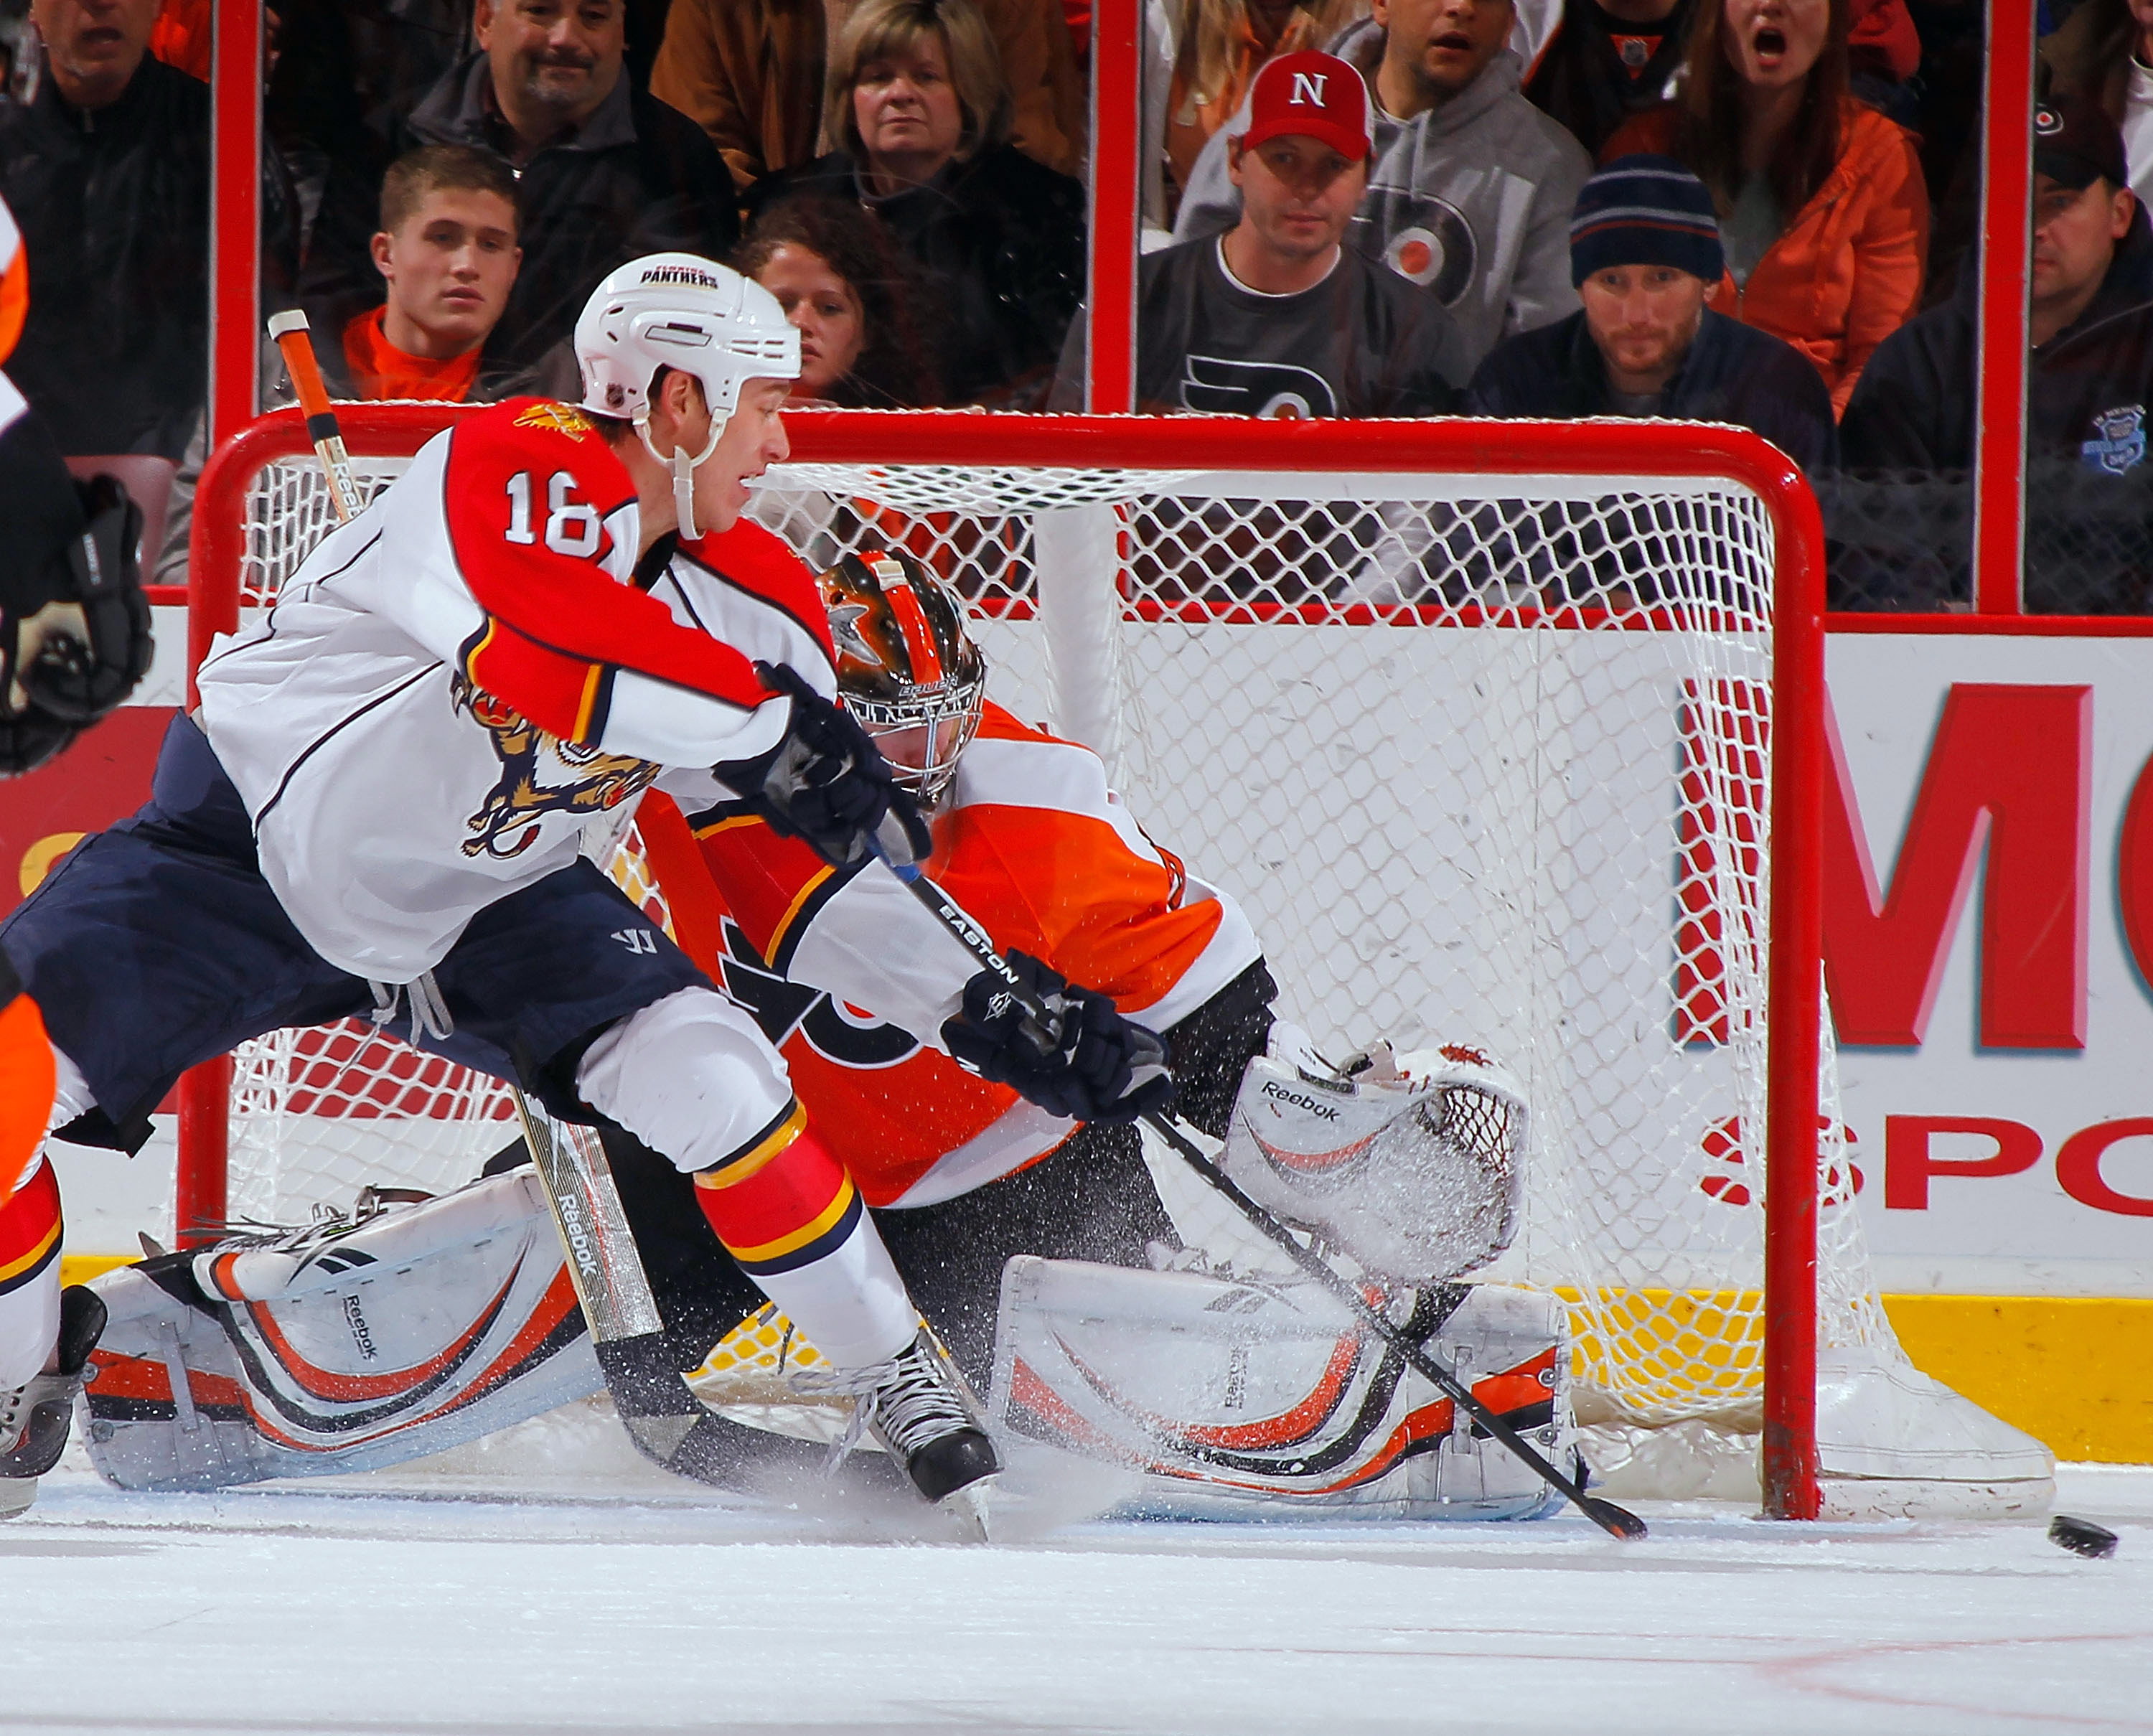 PHILADELPHIA, PA - DECEMBER 20:  Shawn Matthias #18 of the Florida Panthers has his shot go wide of the net as he tried to score on goalie Sergei Bobrovsky #35 of the Philadelphia Flyers during the second period of a hockey game at the Wells Fargo Center